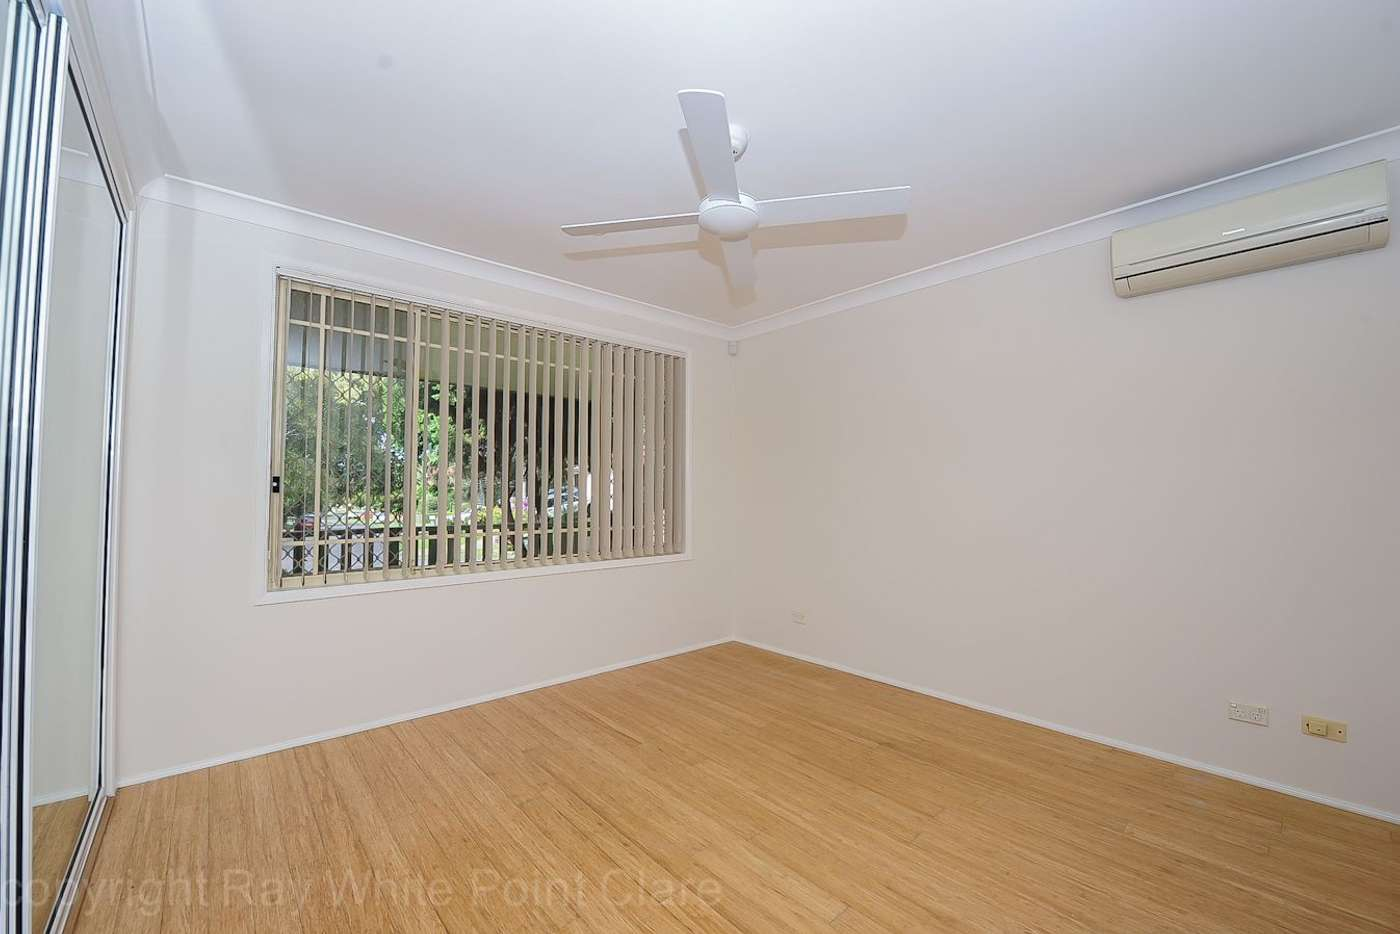 Seventh view of Homely house listing, 11 Oxley Place, Point Clare NSW 2250